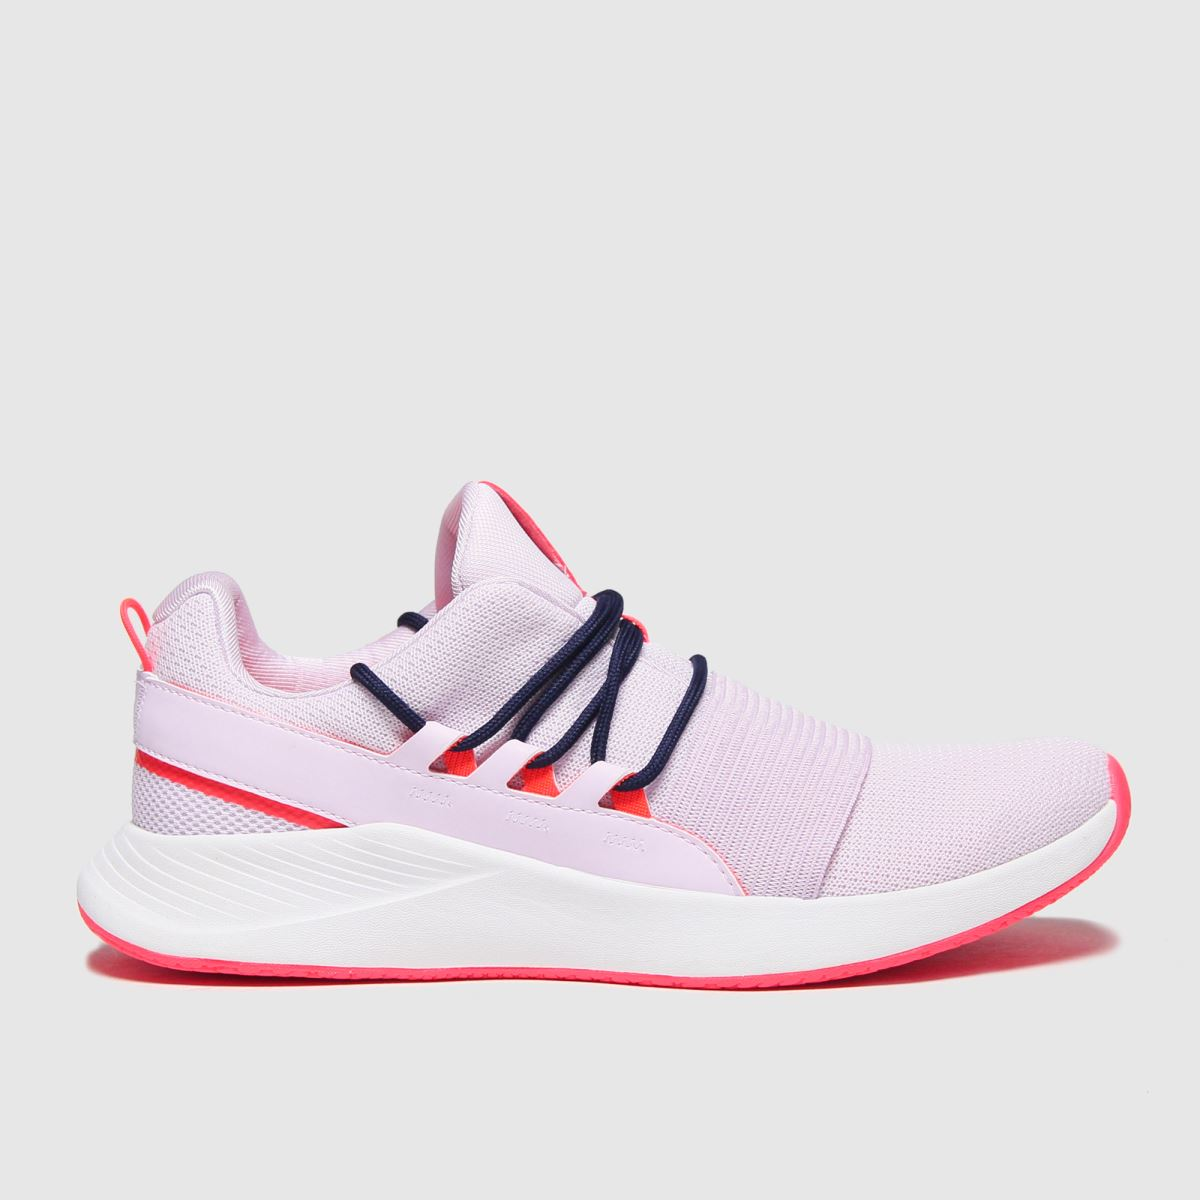 Under Armour White & Pink Charged Breath Lace Trainers